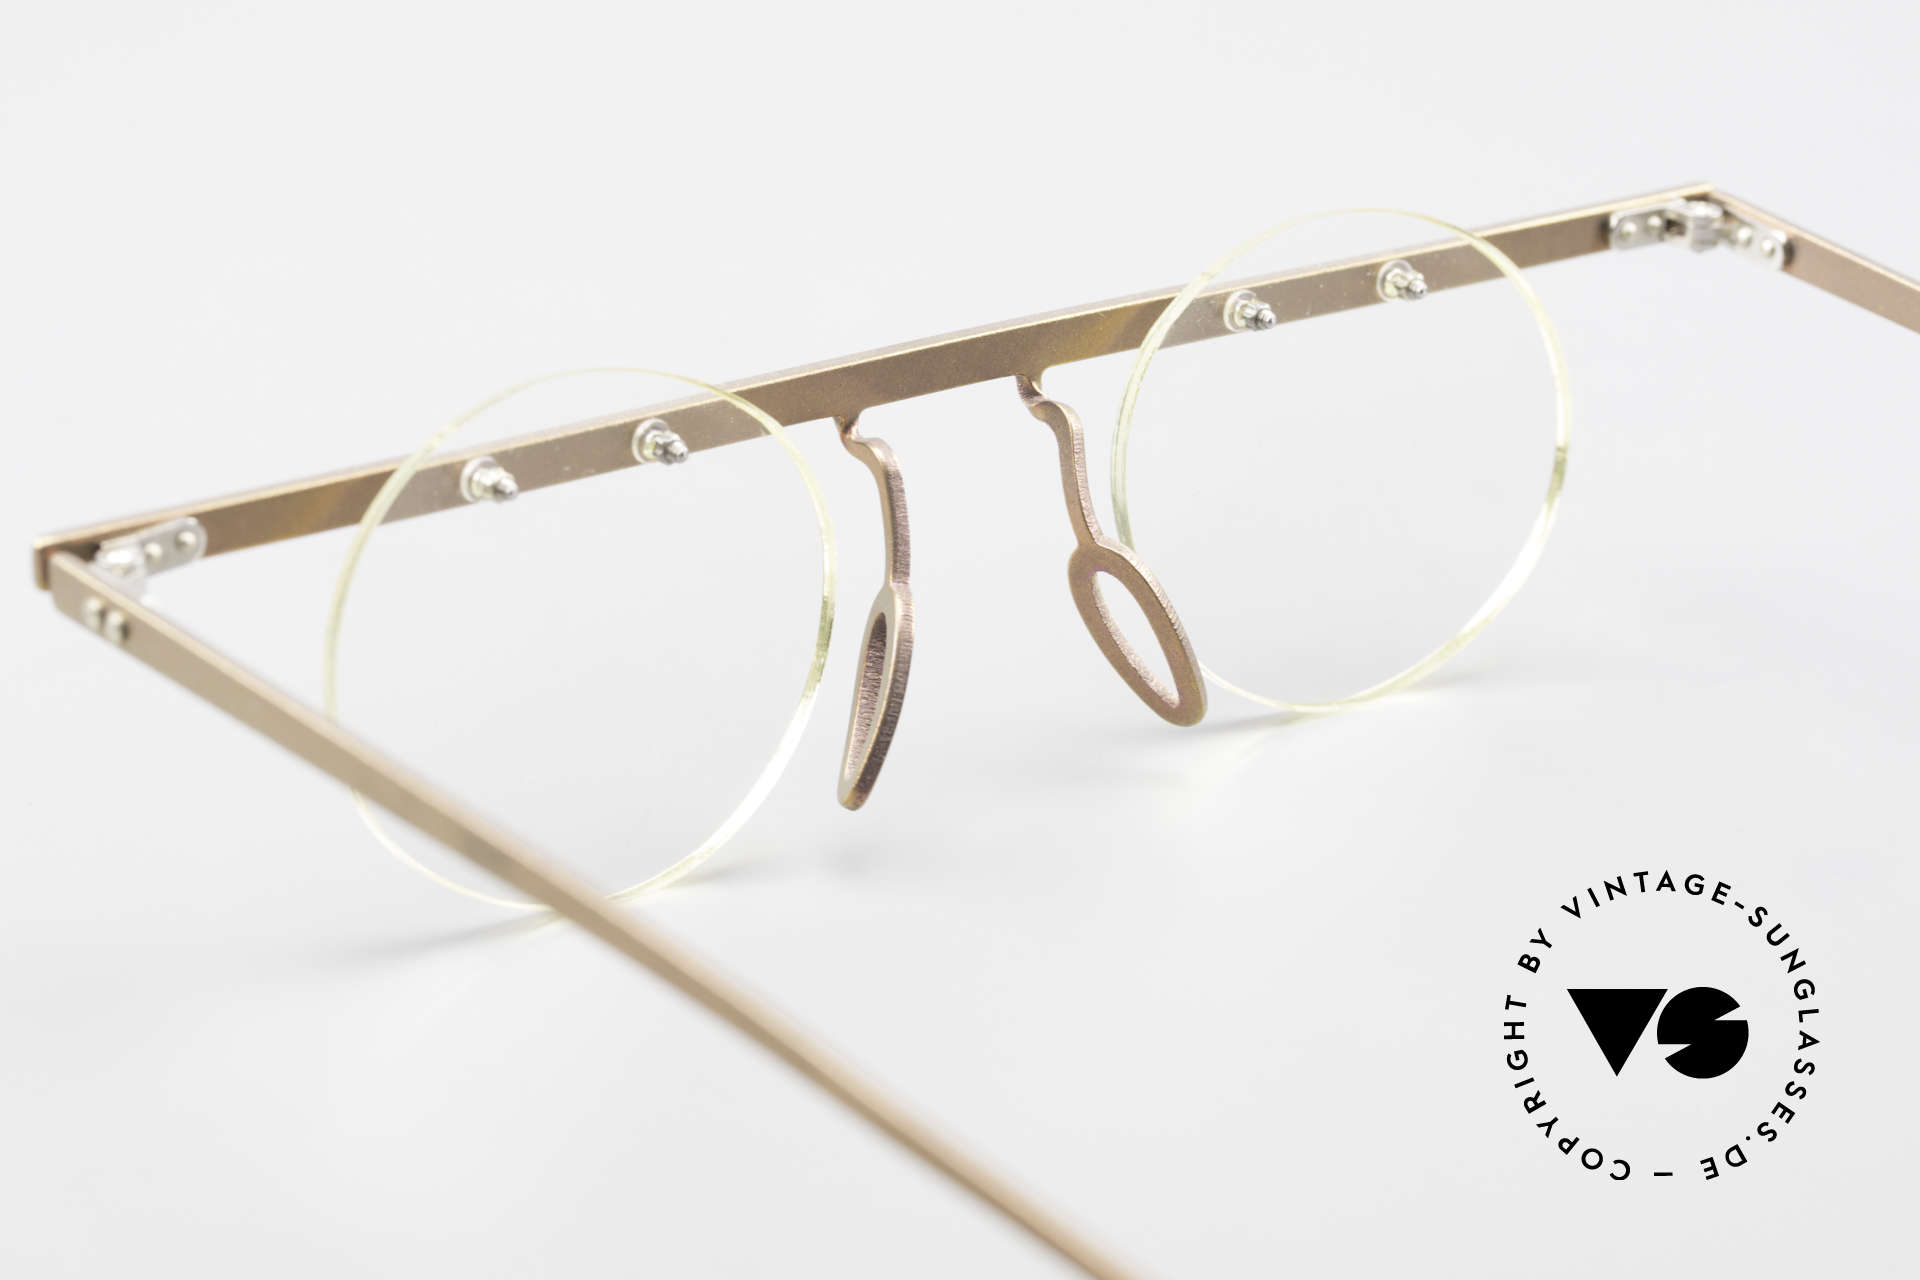 Theo Belgium Tita VII 9 Vintage Titanium Eyeglasses, DEMO LENSES can be replaced with optical / sun lenses, Made for Men and Women